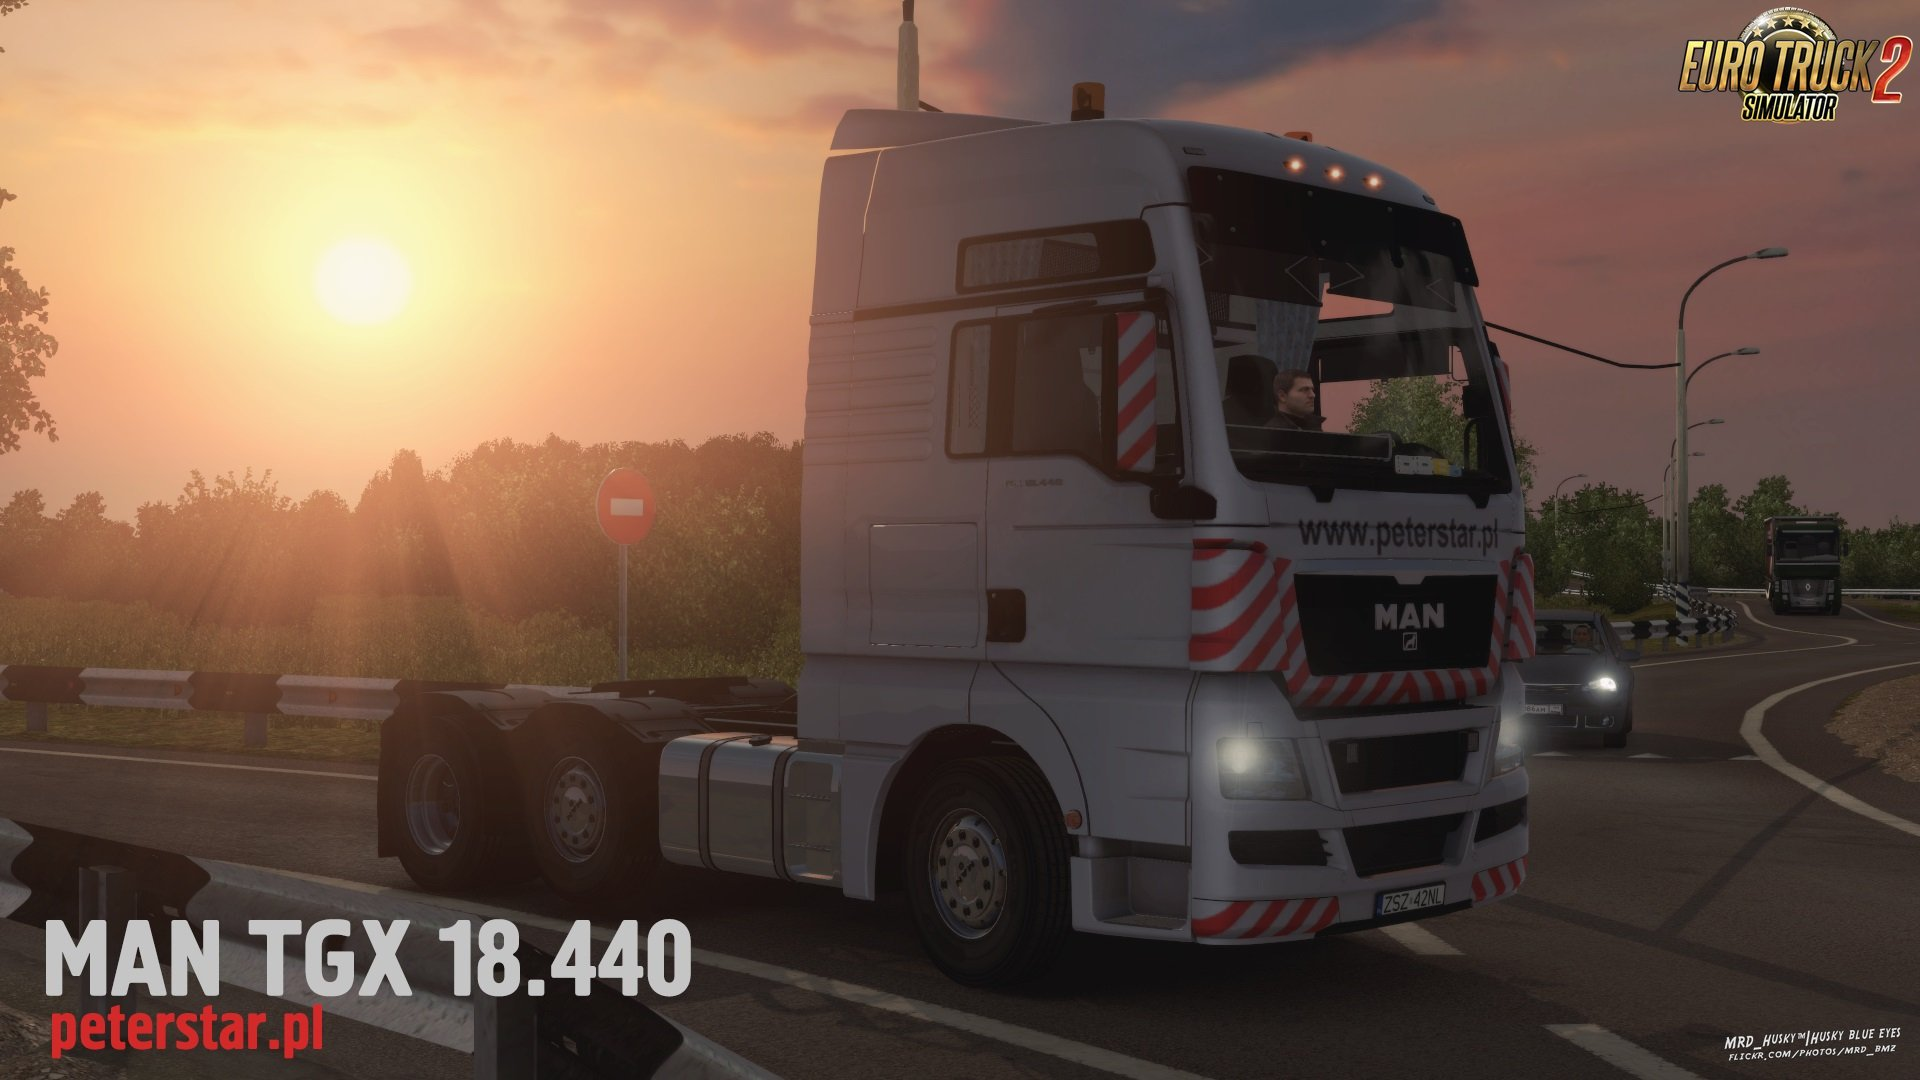 Man TGX Peterstar v1.0 for Ets2